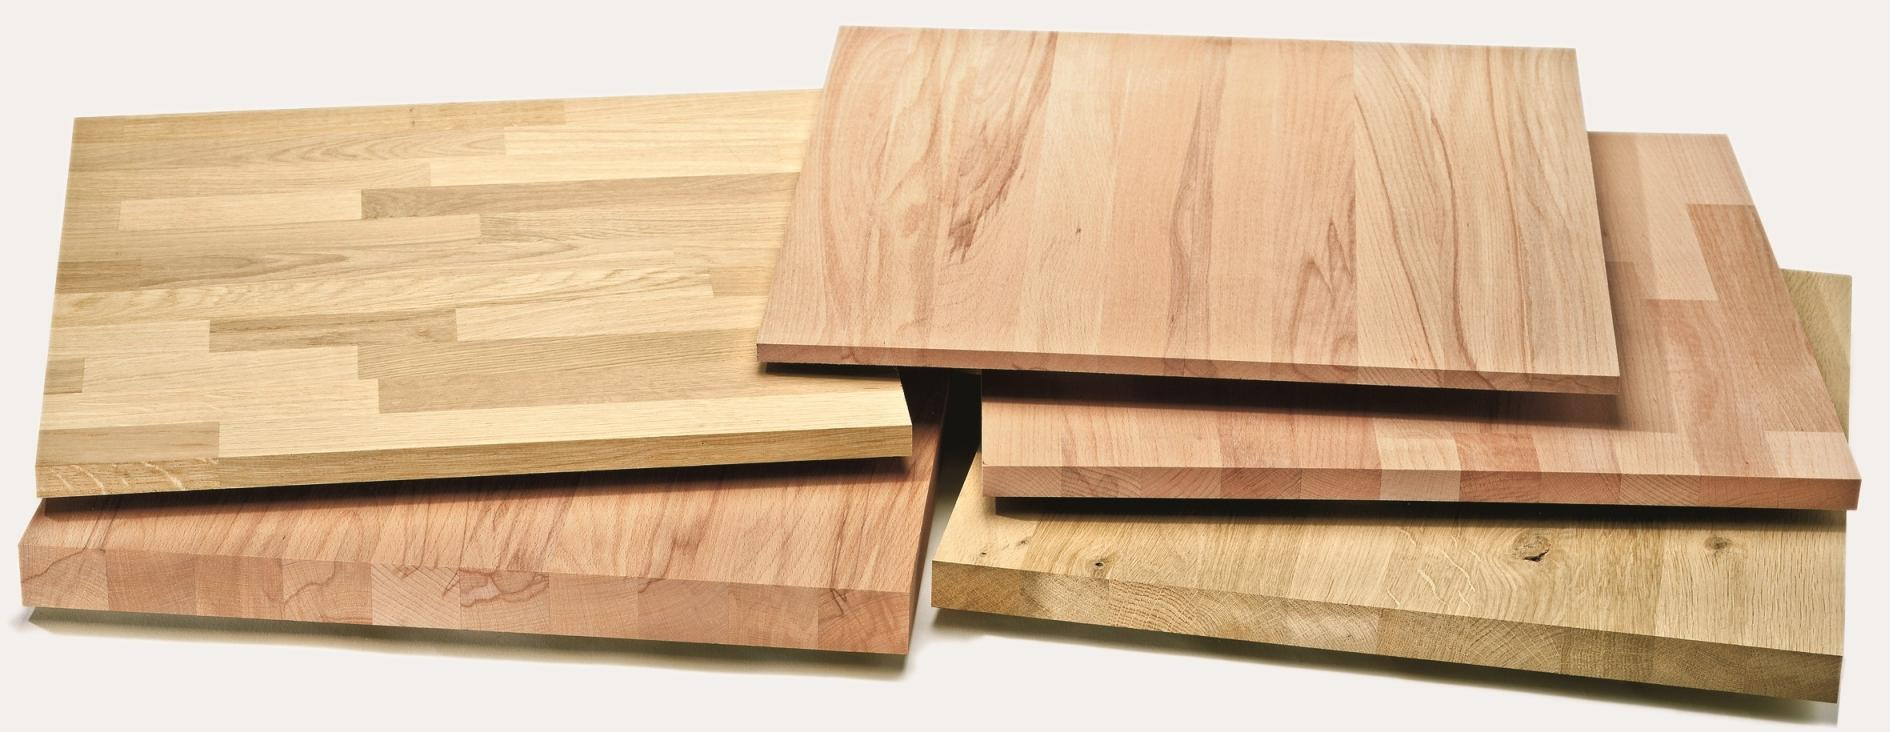 Solid wood